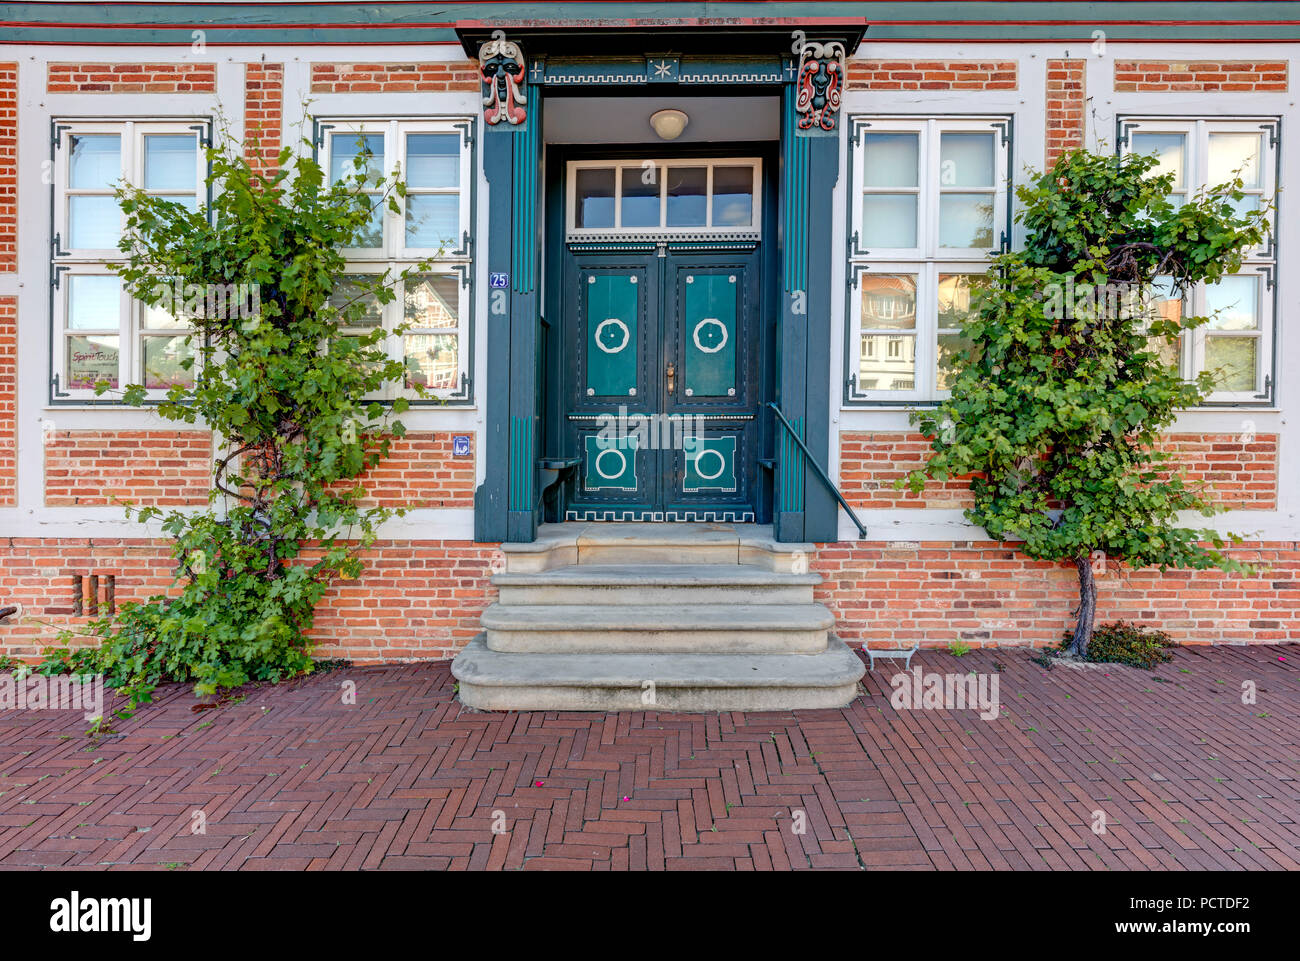 House, Facade, Stade, Altes Land, Niederelbe, Lower Saxony, Northern Germany, Germany, Europe - Stock Image